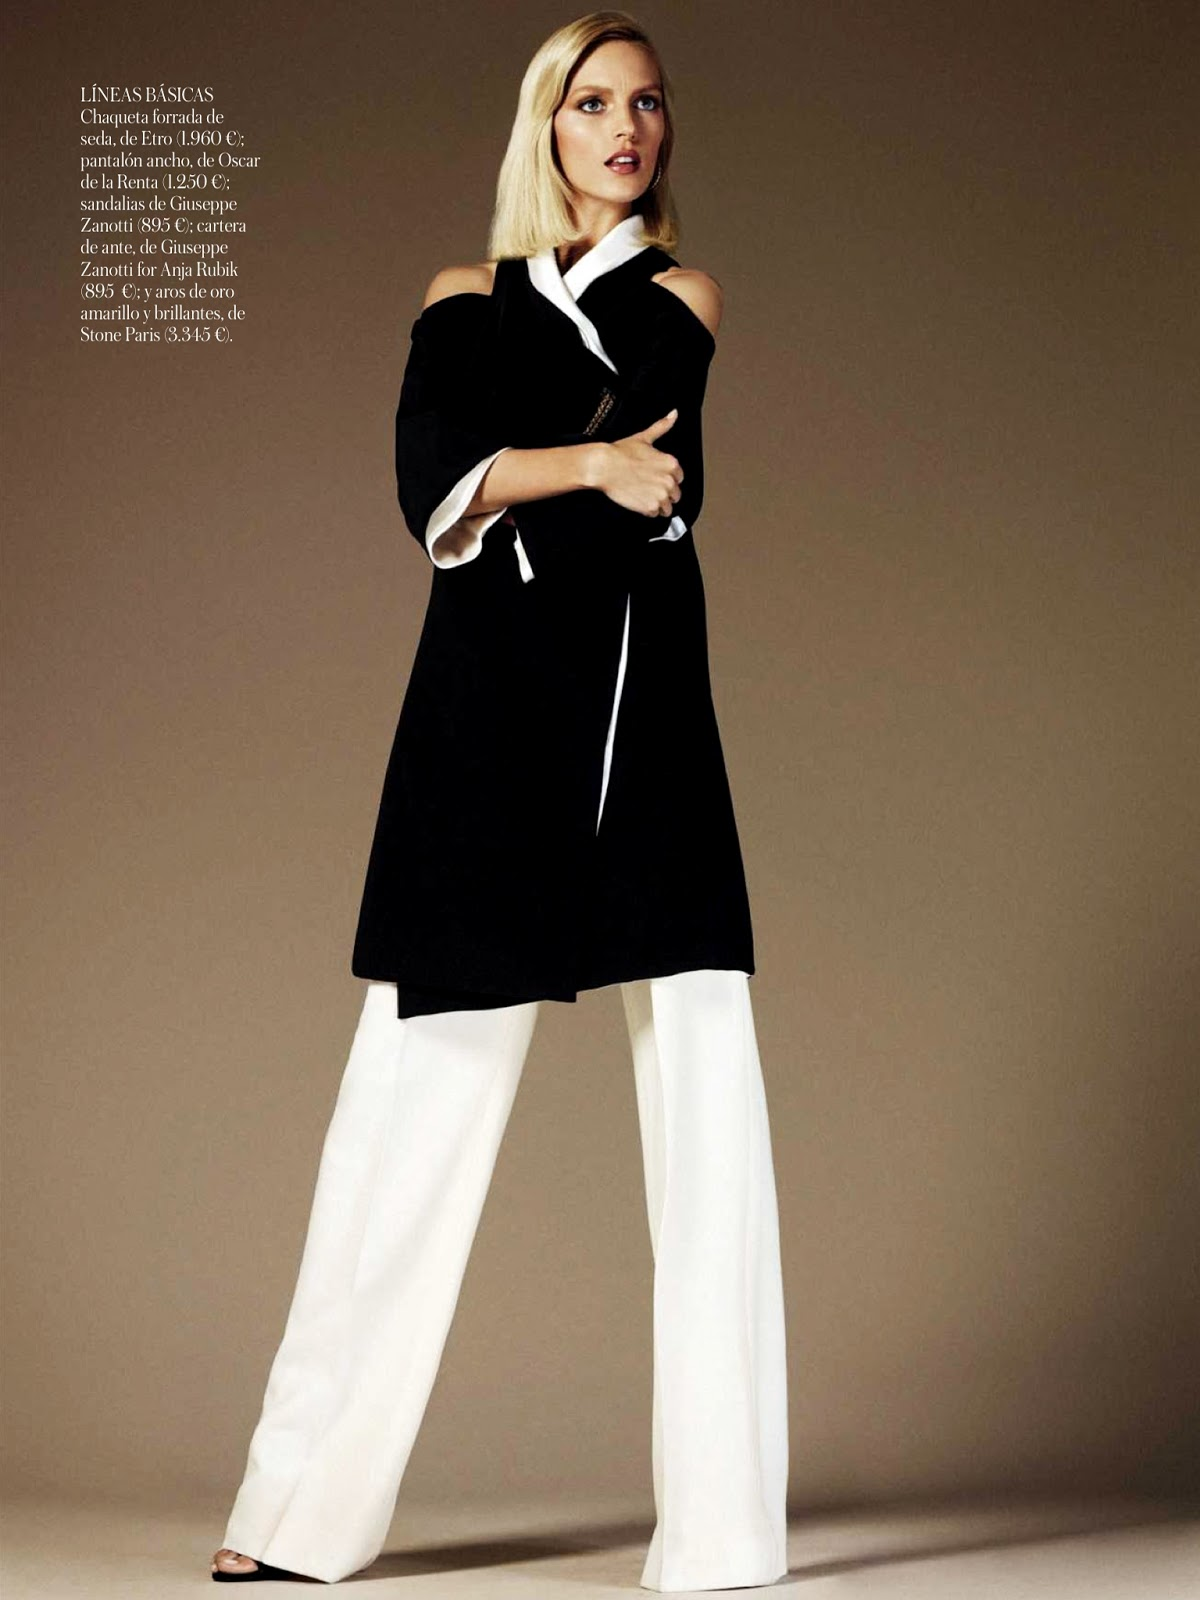 fashion_scans_remastered-anja_rubik-vogue_espana-june_2013-scanned_by_vampirehorde-hq-6.jpg